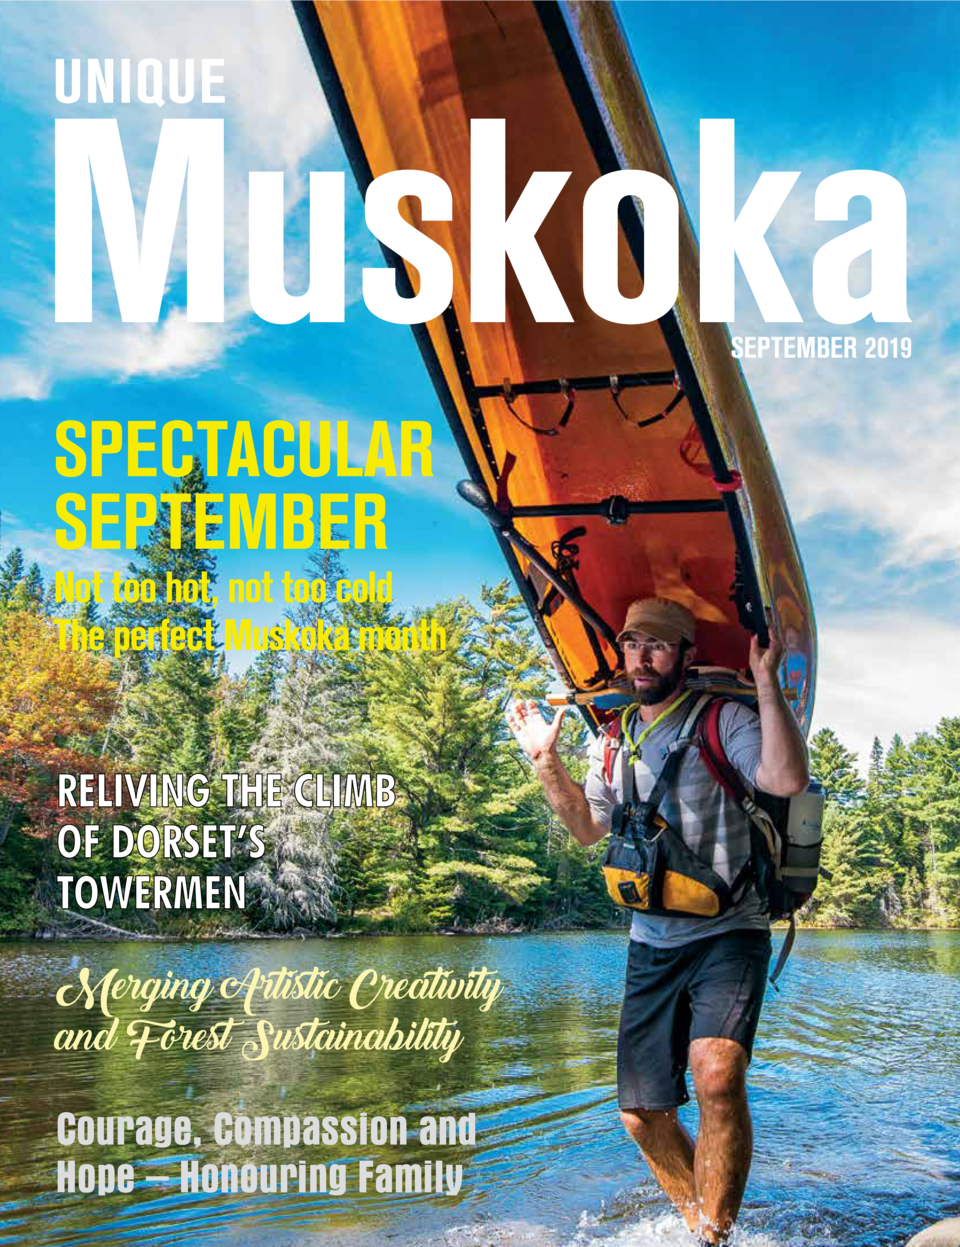 SEPTEMBER 2019  SPECTACULAR SEPTEMBER  Not too hot, not too cold The perfect Muskoka month  Merging Artistic Creativity an...